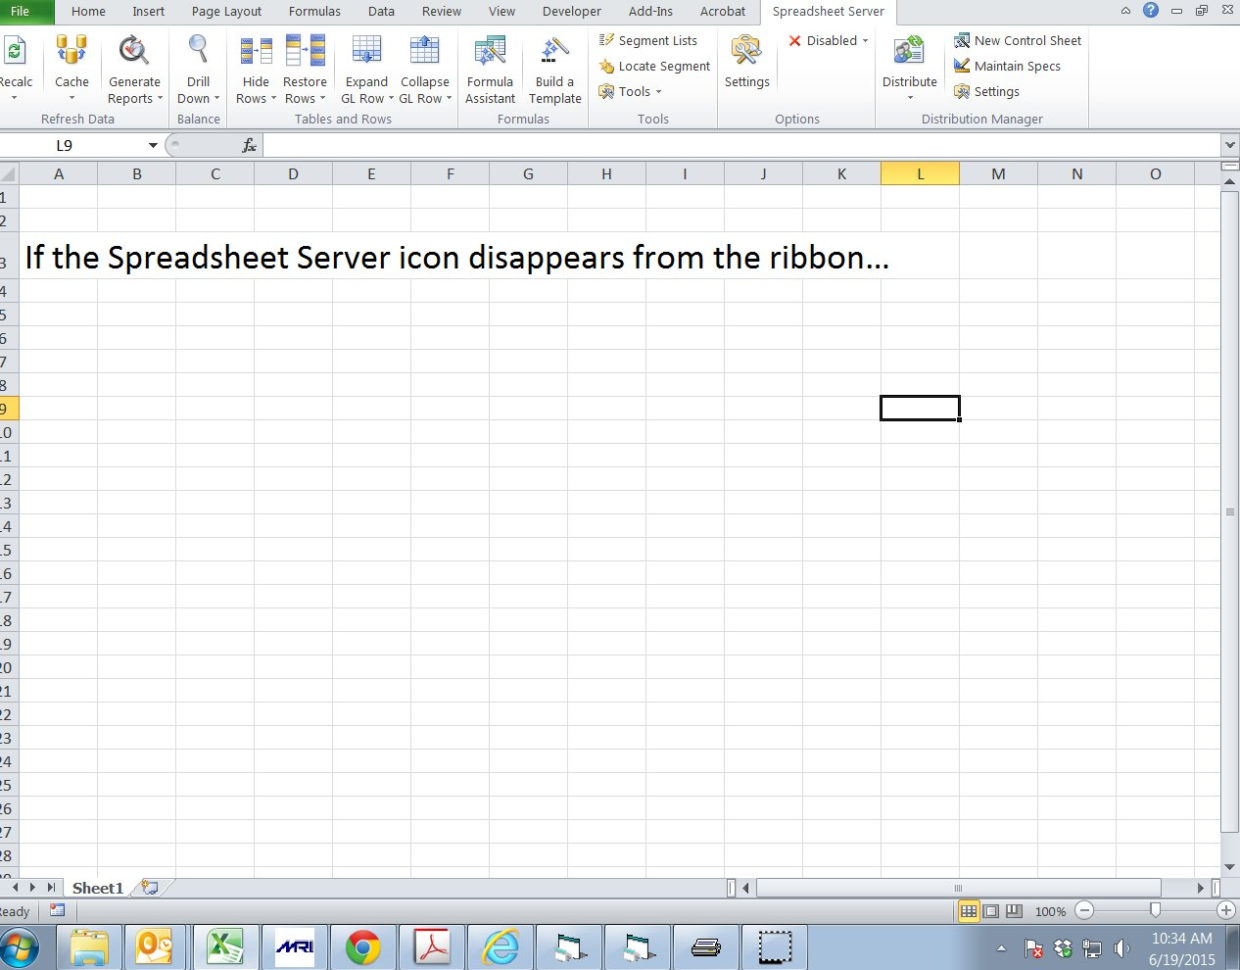 Spreadsheet Server Installation Pertaining To Spreadsheet Server Ribbon Disappearing